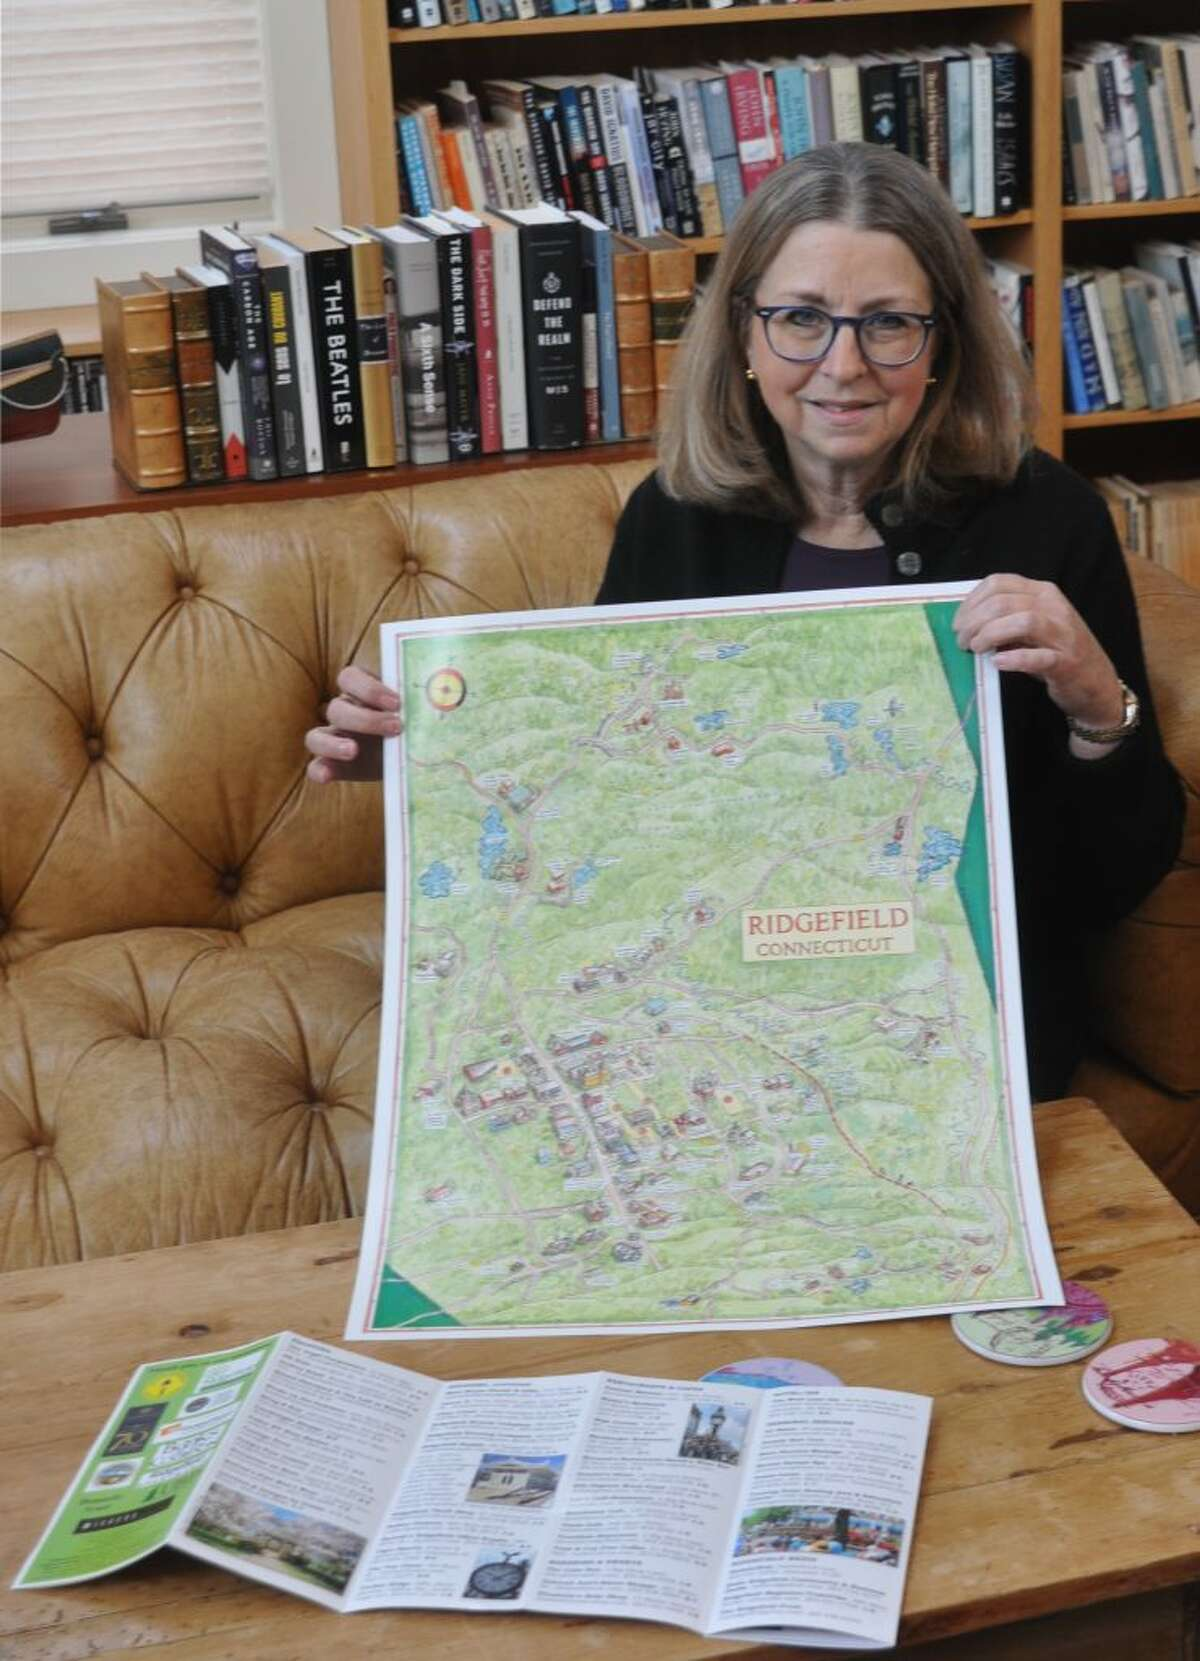 The Ridgefield Visitors' Map, spearheaded by Books on the Common owner Ellen Burns, features artist Bart Arnold's drawings of town landmarks and locations. - Macklin Reid photo